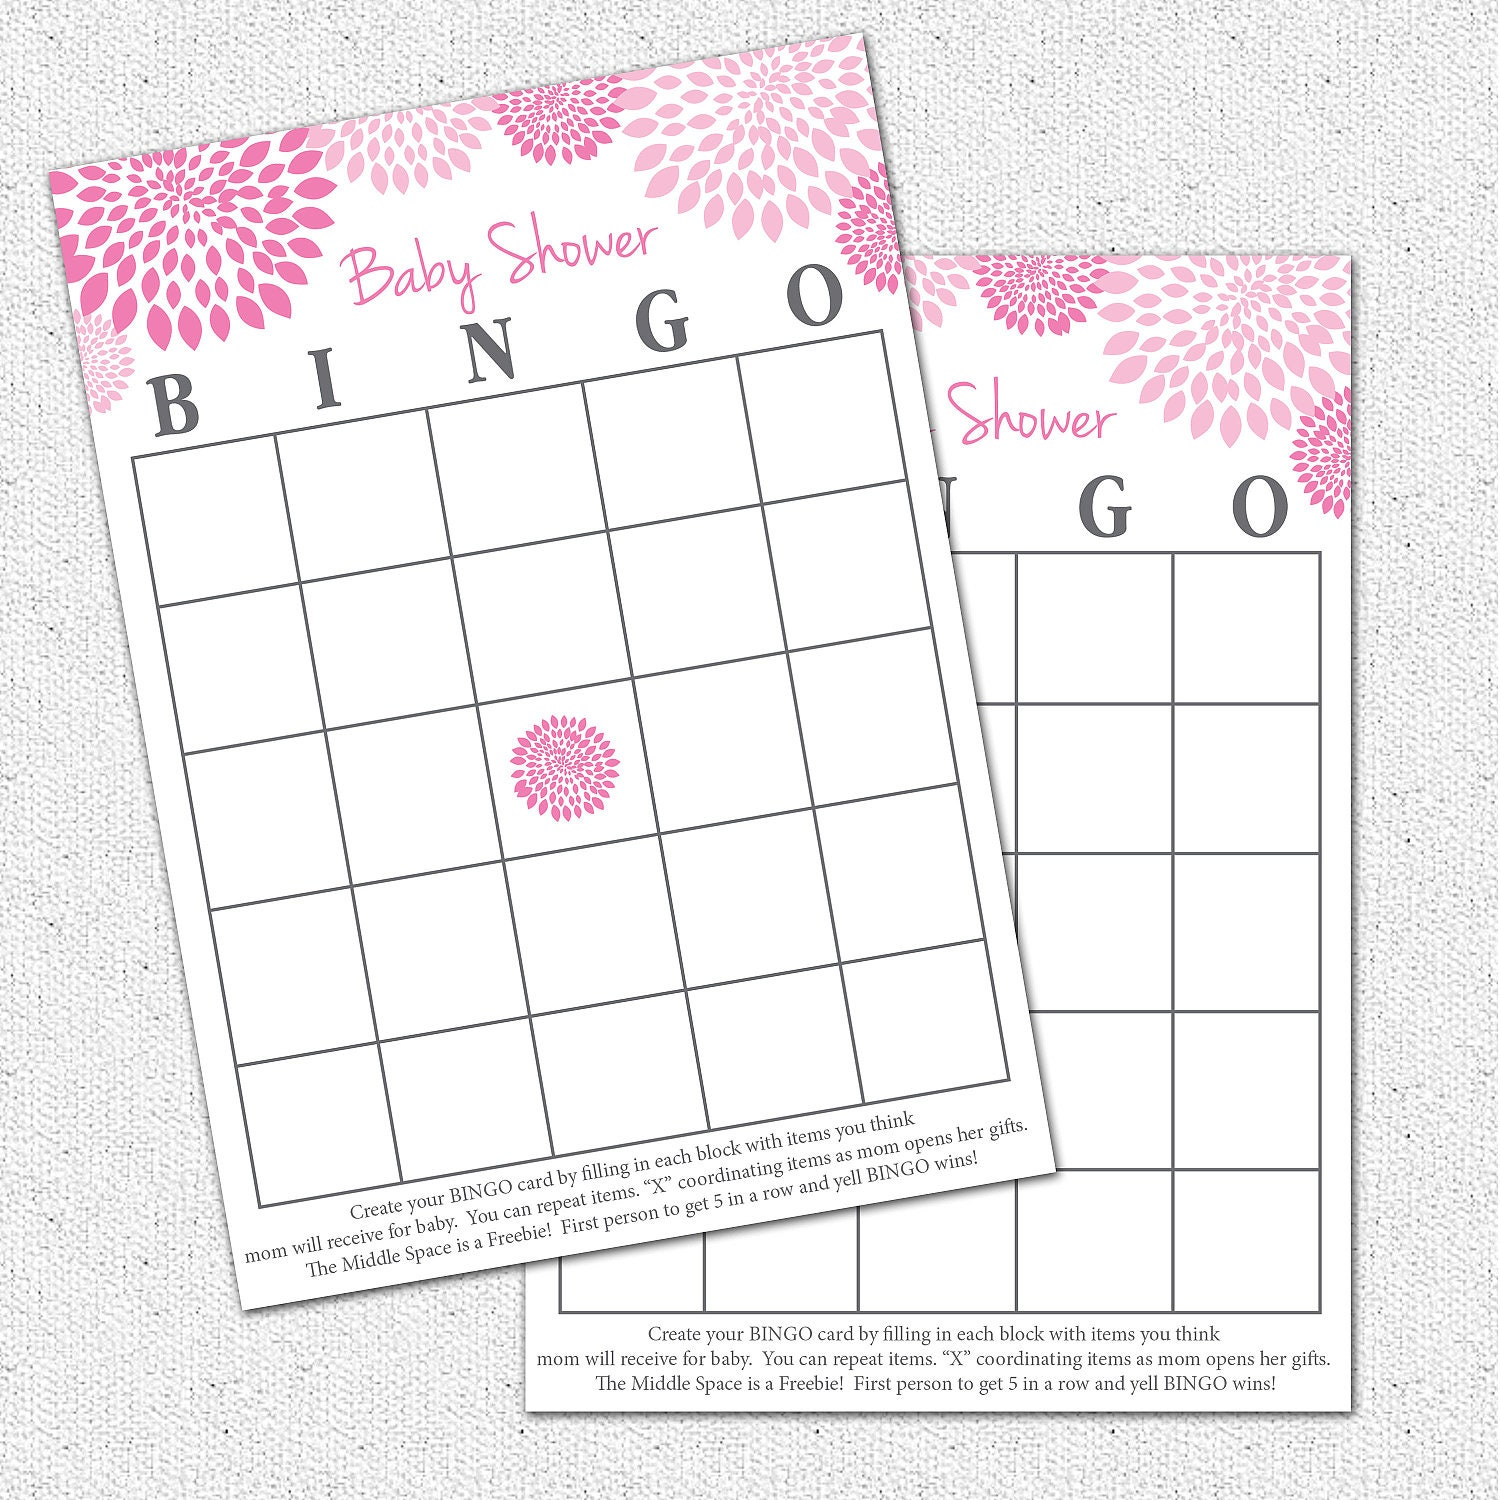 Baby shower bingo game printable girl hot and pale pink and zoom pronofoot35fo Choice Image